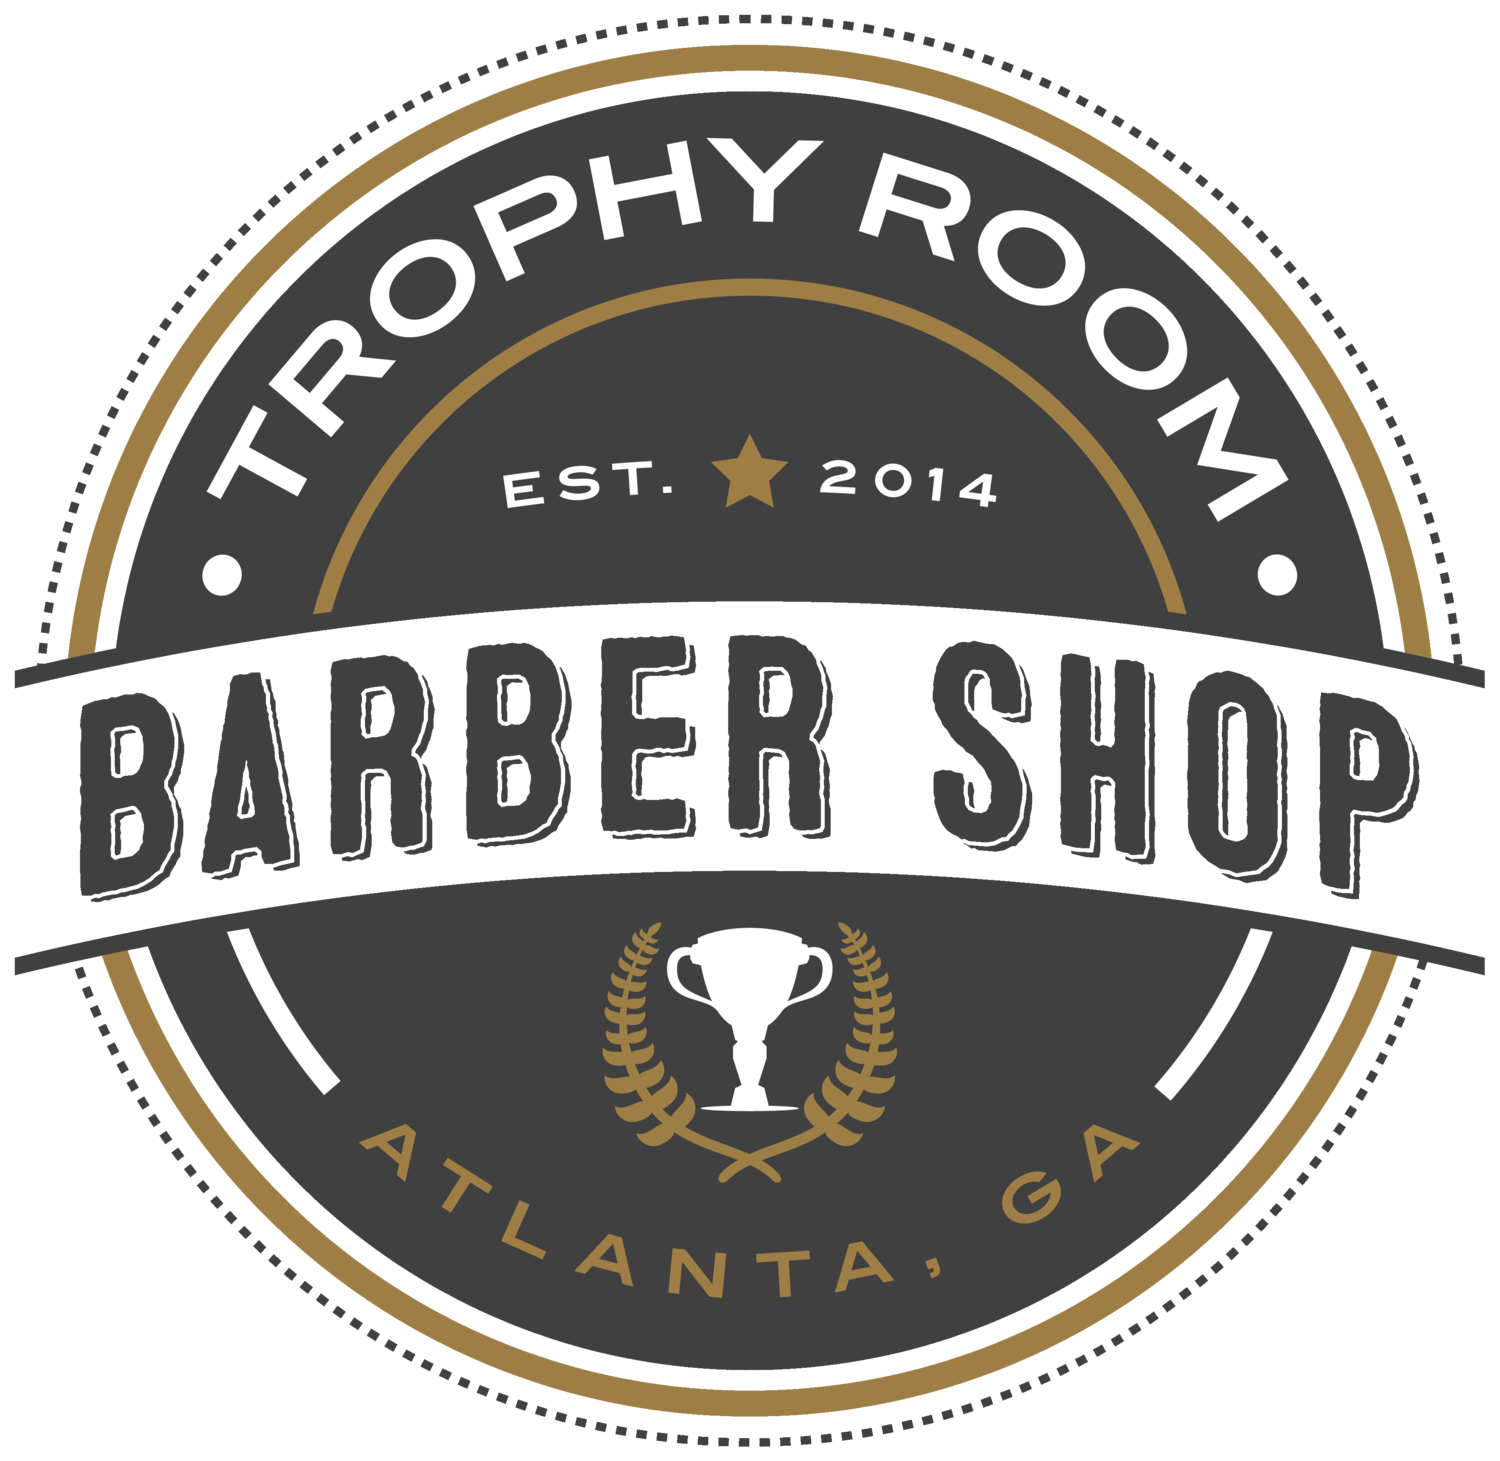 Trophy Room Barber Shop